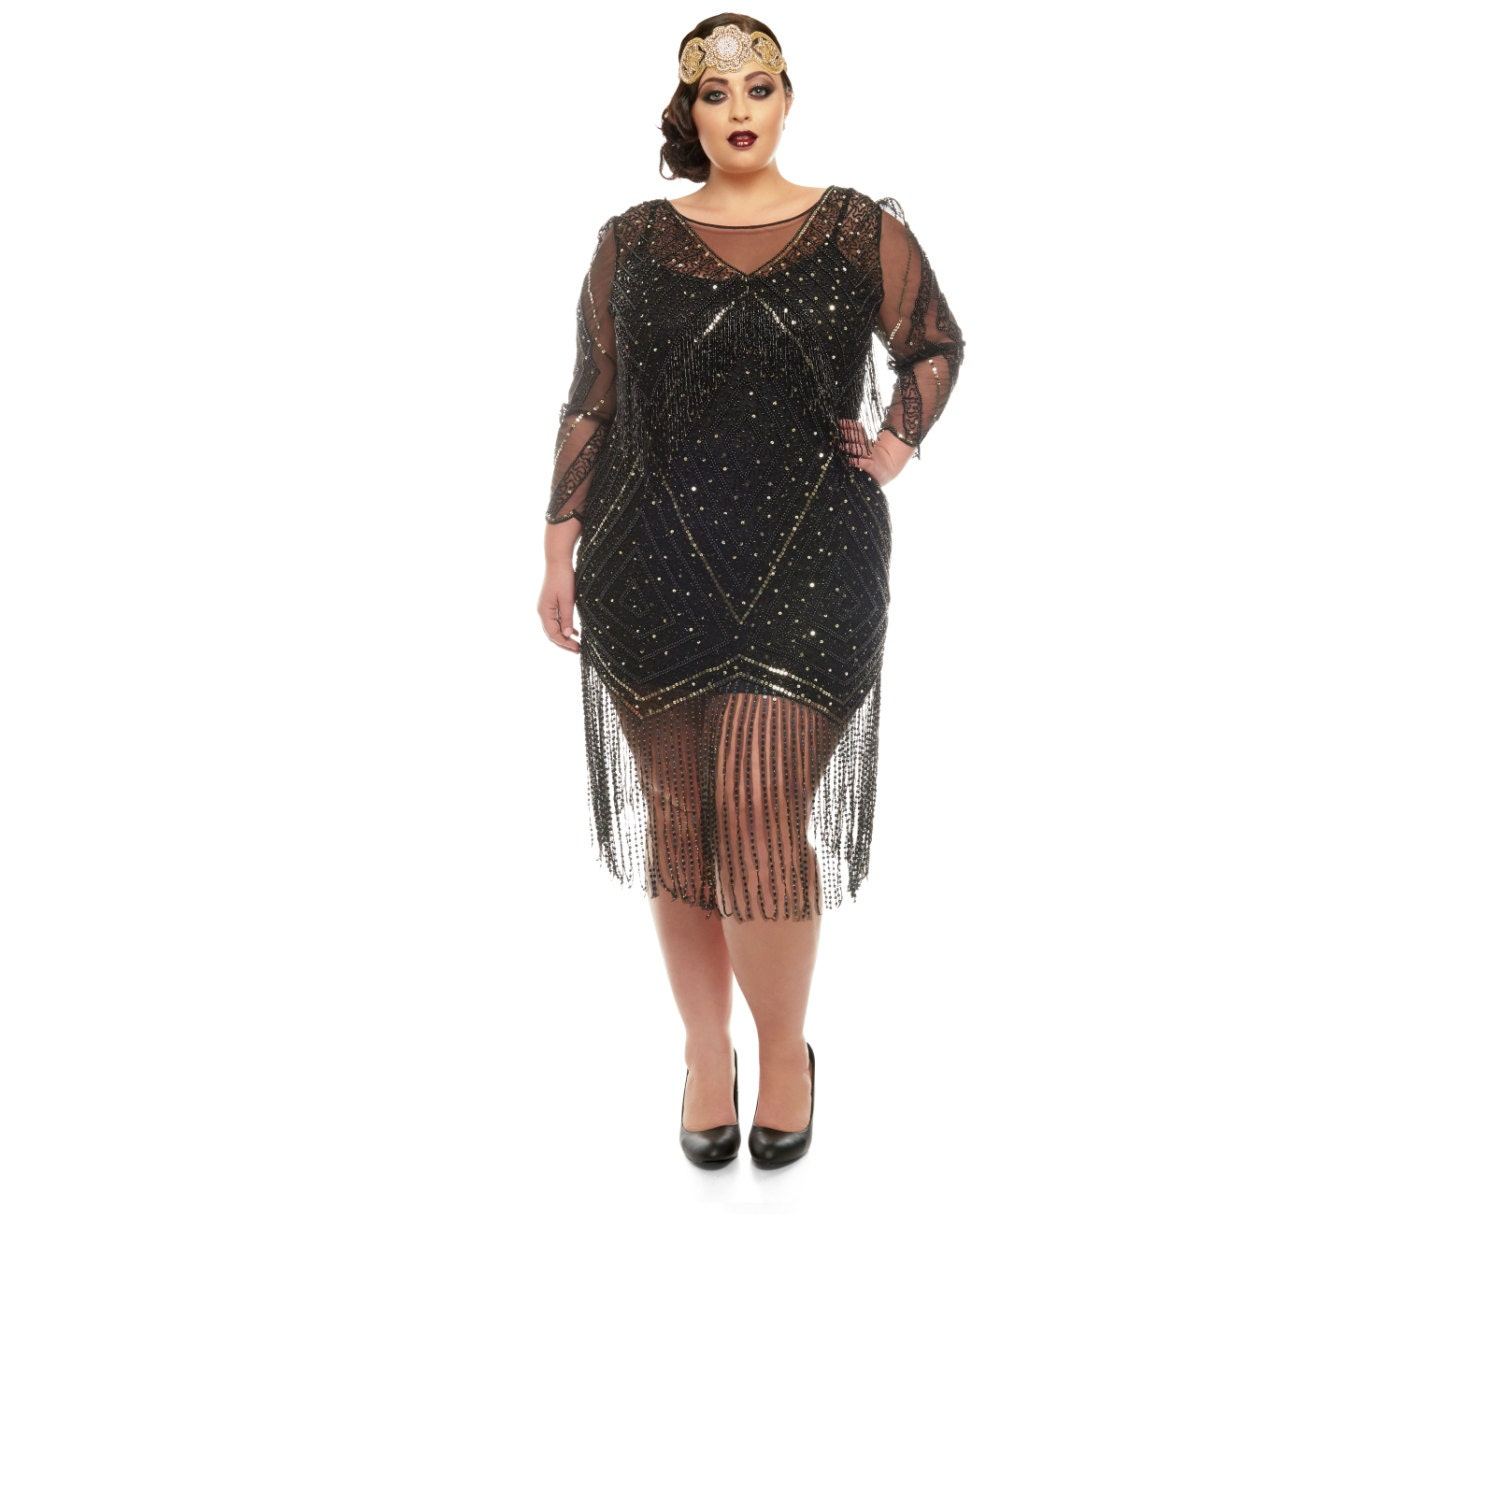 Plus size Betty Black Fringe Dress with Sleeves Slip included ...